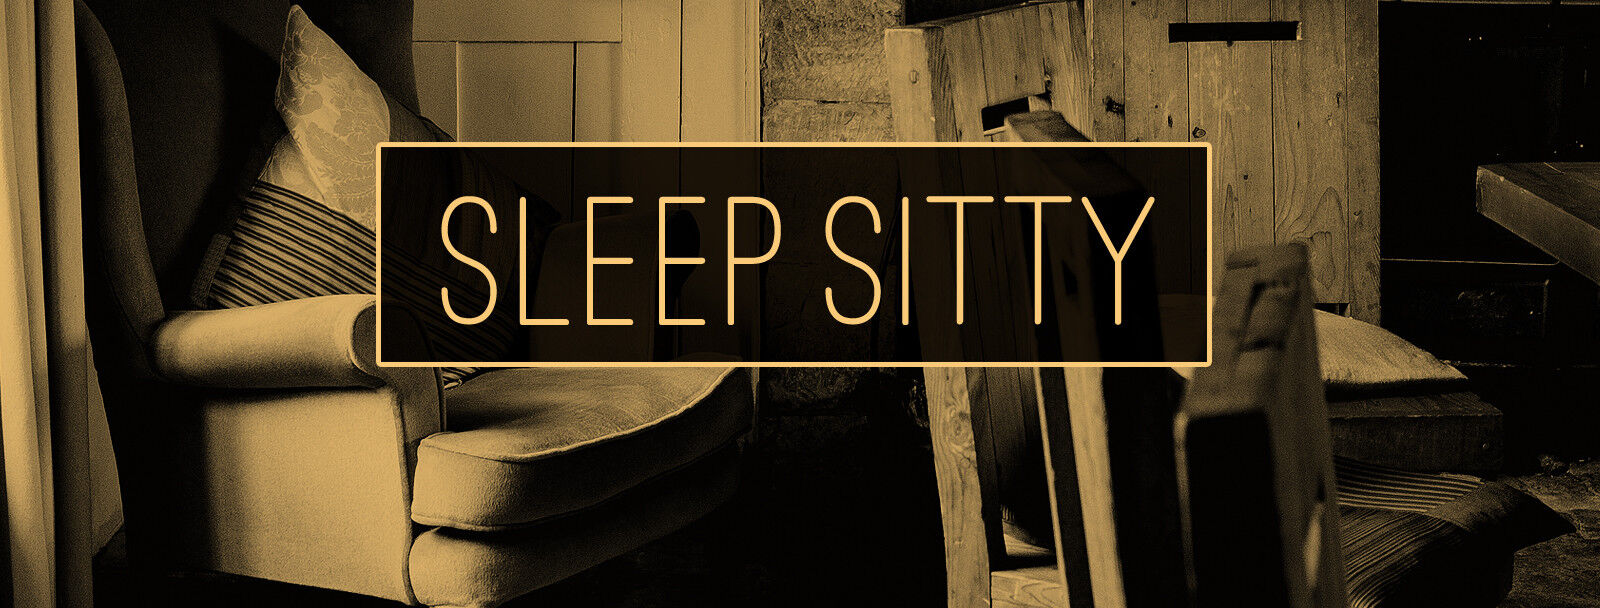 SleepSitty